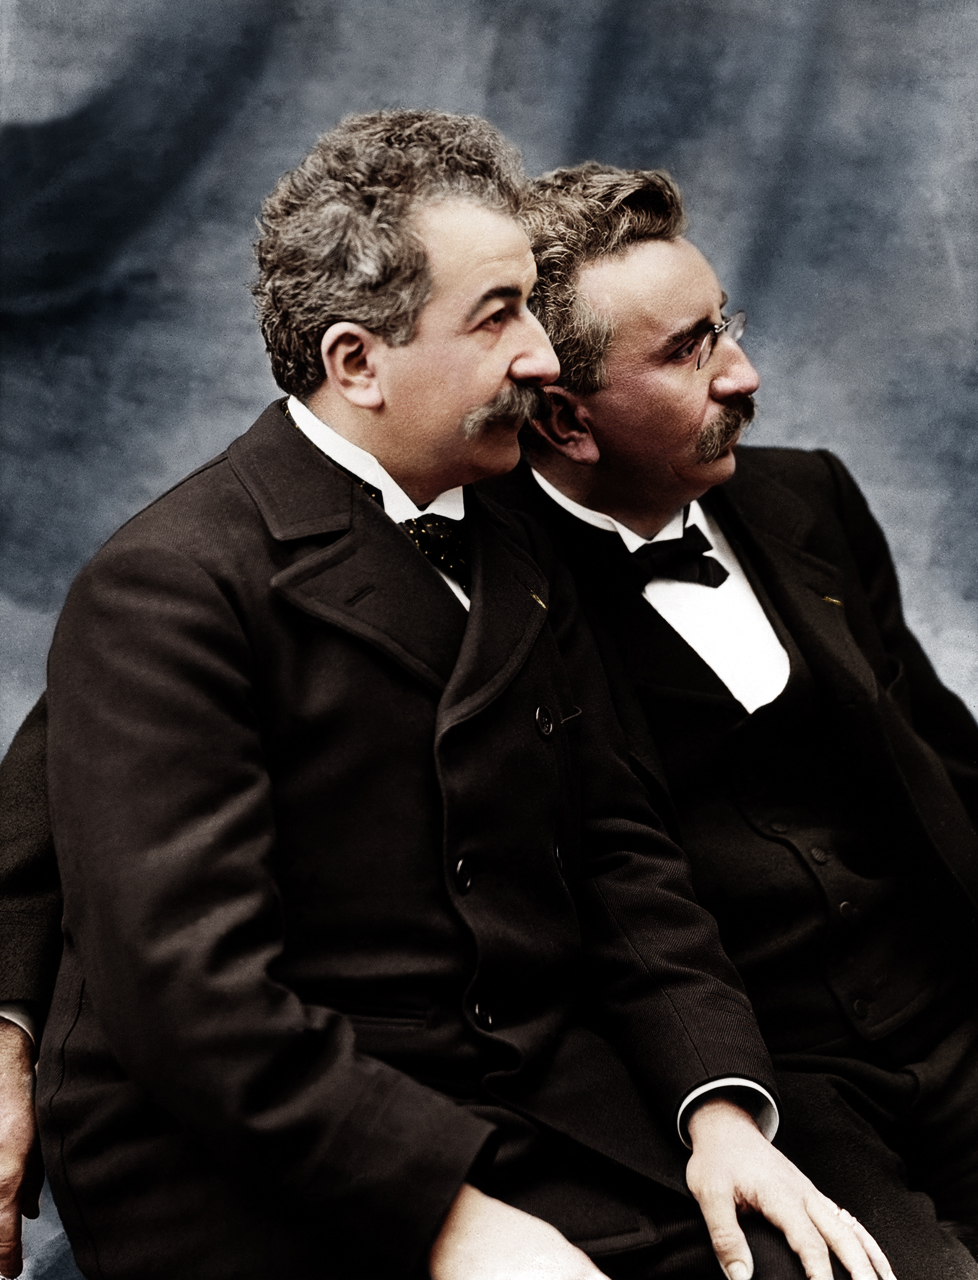 Auguste Marie Louis Nicholas Lumière e Louis Jean Lumière, os irmãos Lumière, foram os inventores do cinematógrafo, sendo frequentemente referidos como os pais do cinema.